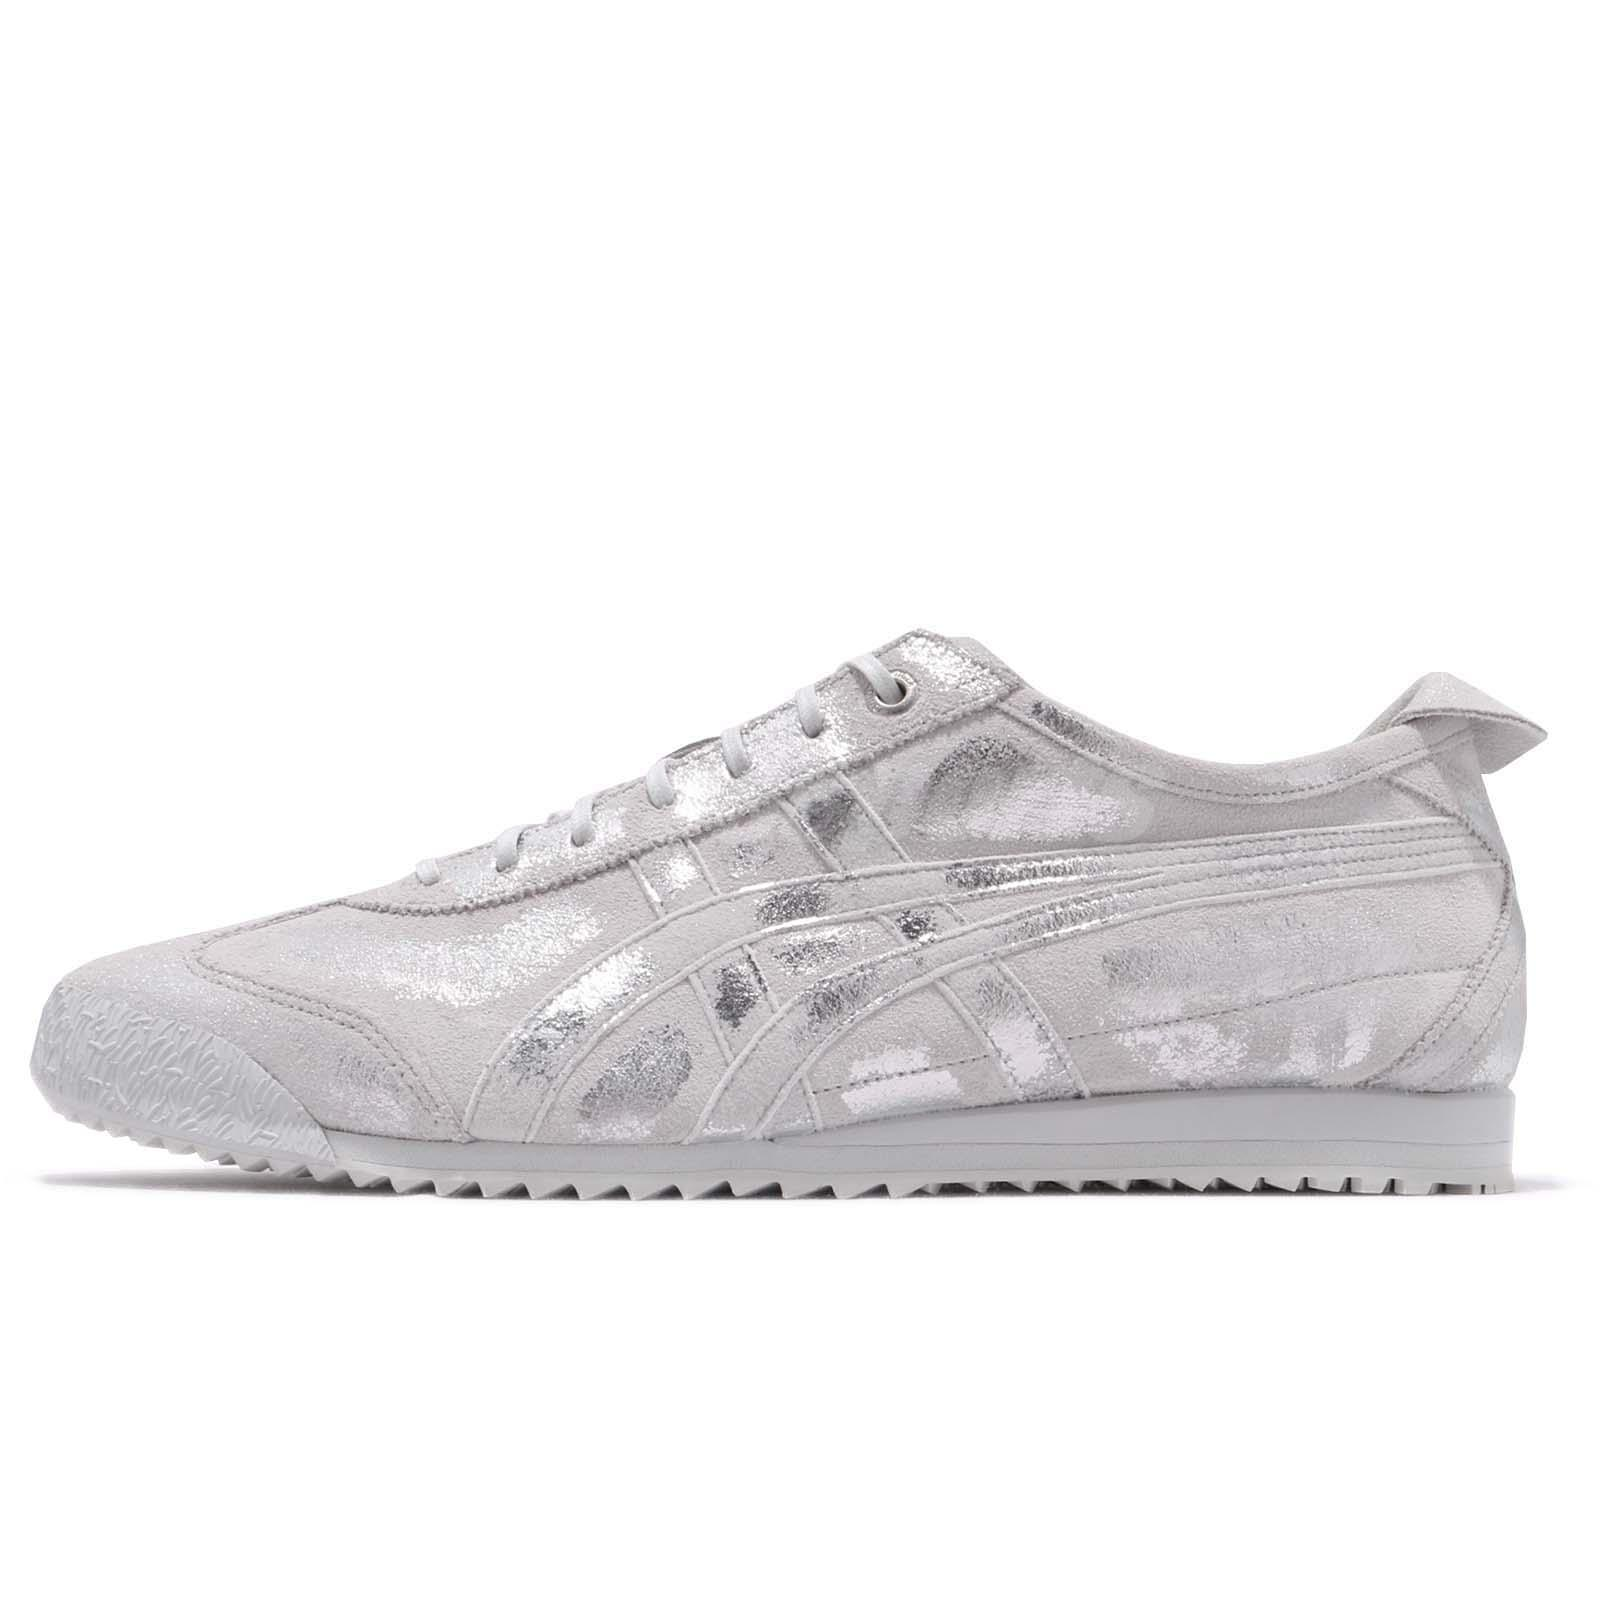 new product 213ae 0148c Details about Asics Onitsuka Tiger Mexico 66 Glacier Grey Silver Men Women  Shoes 1183A190-020